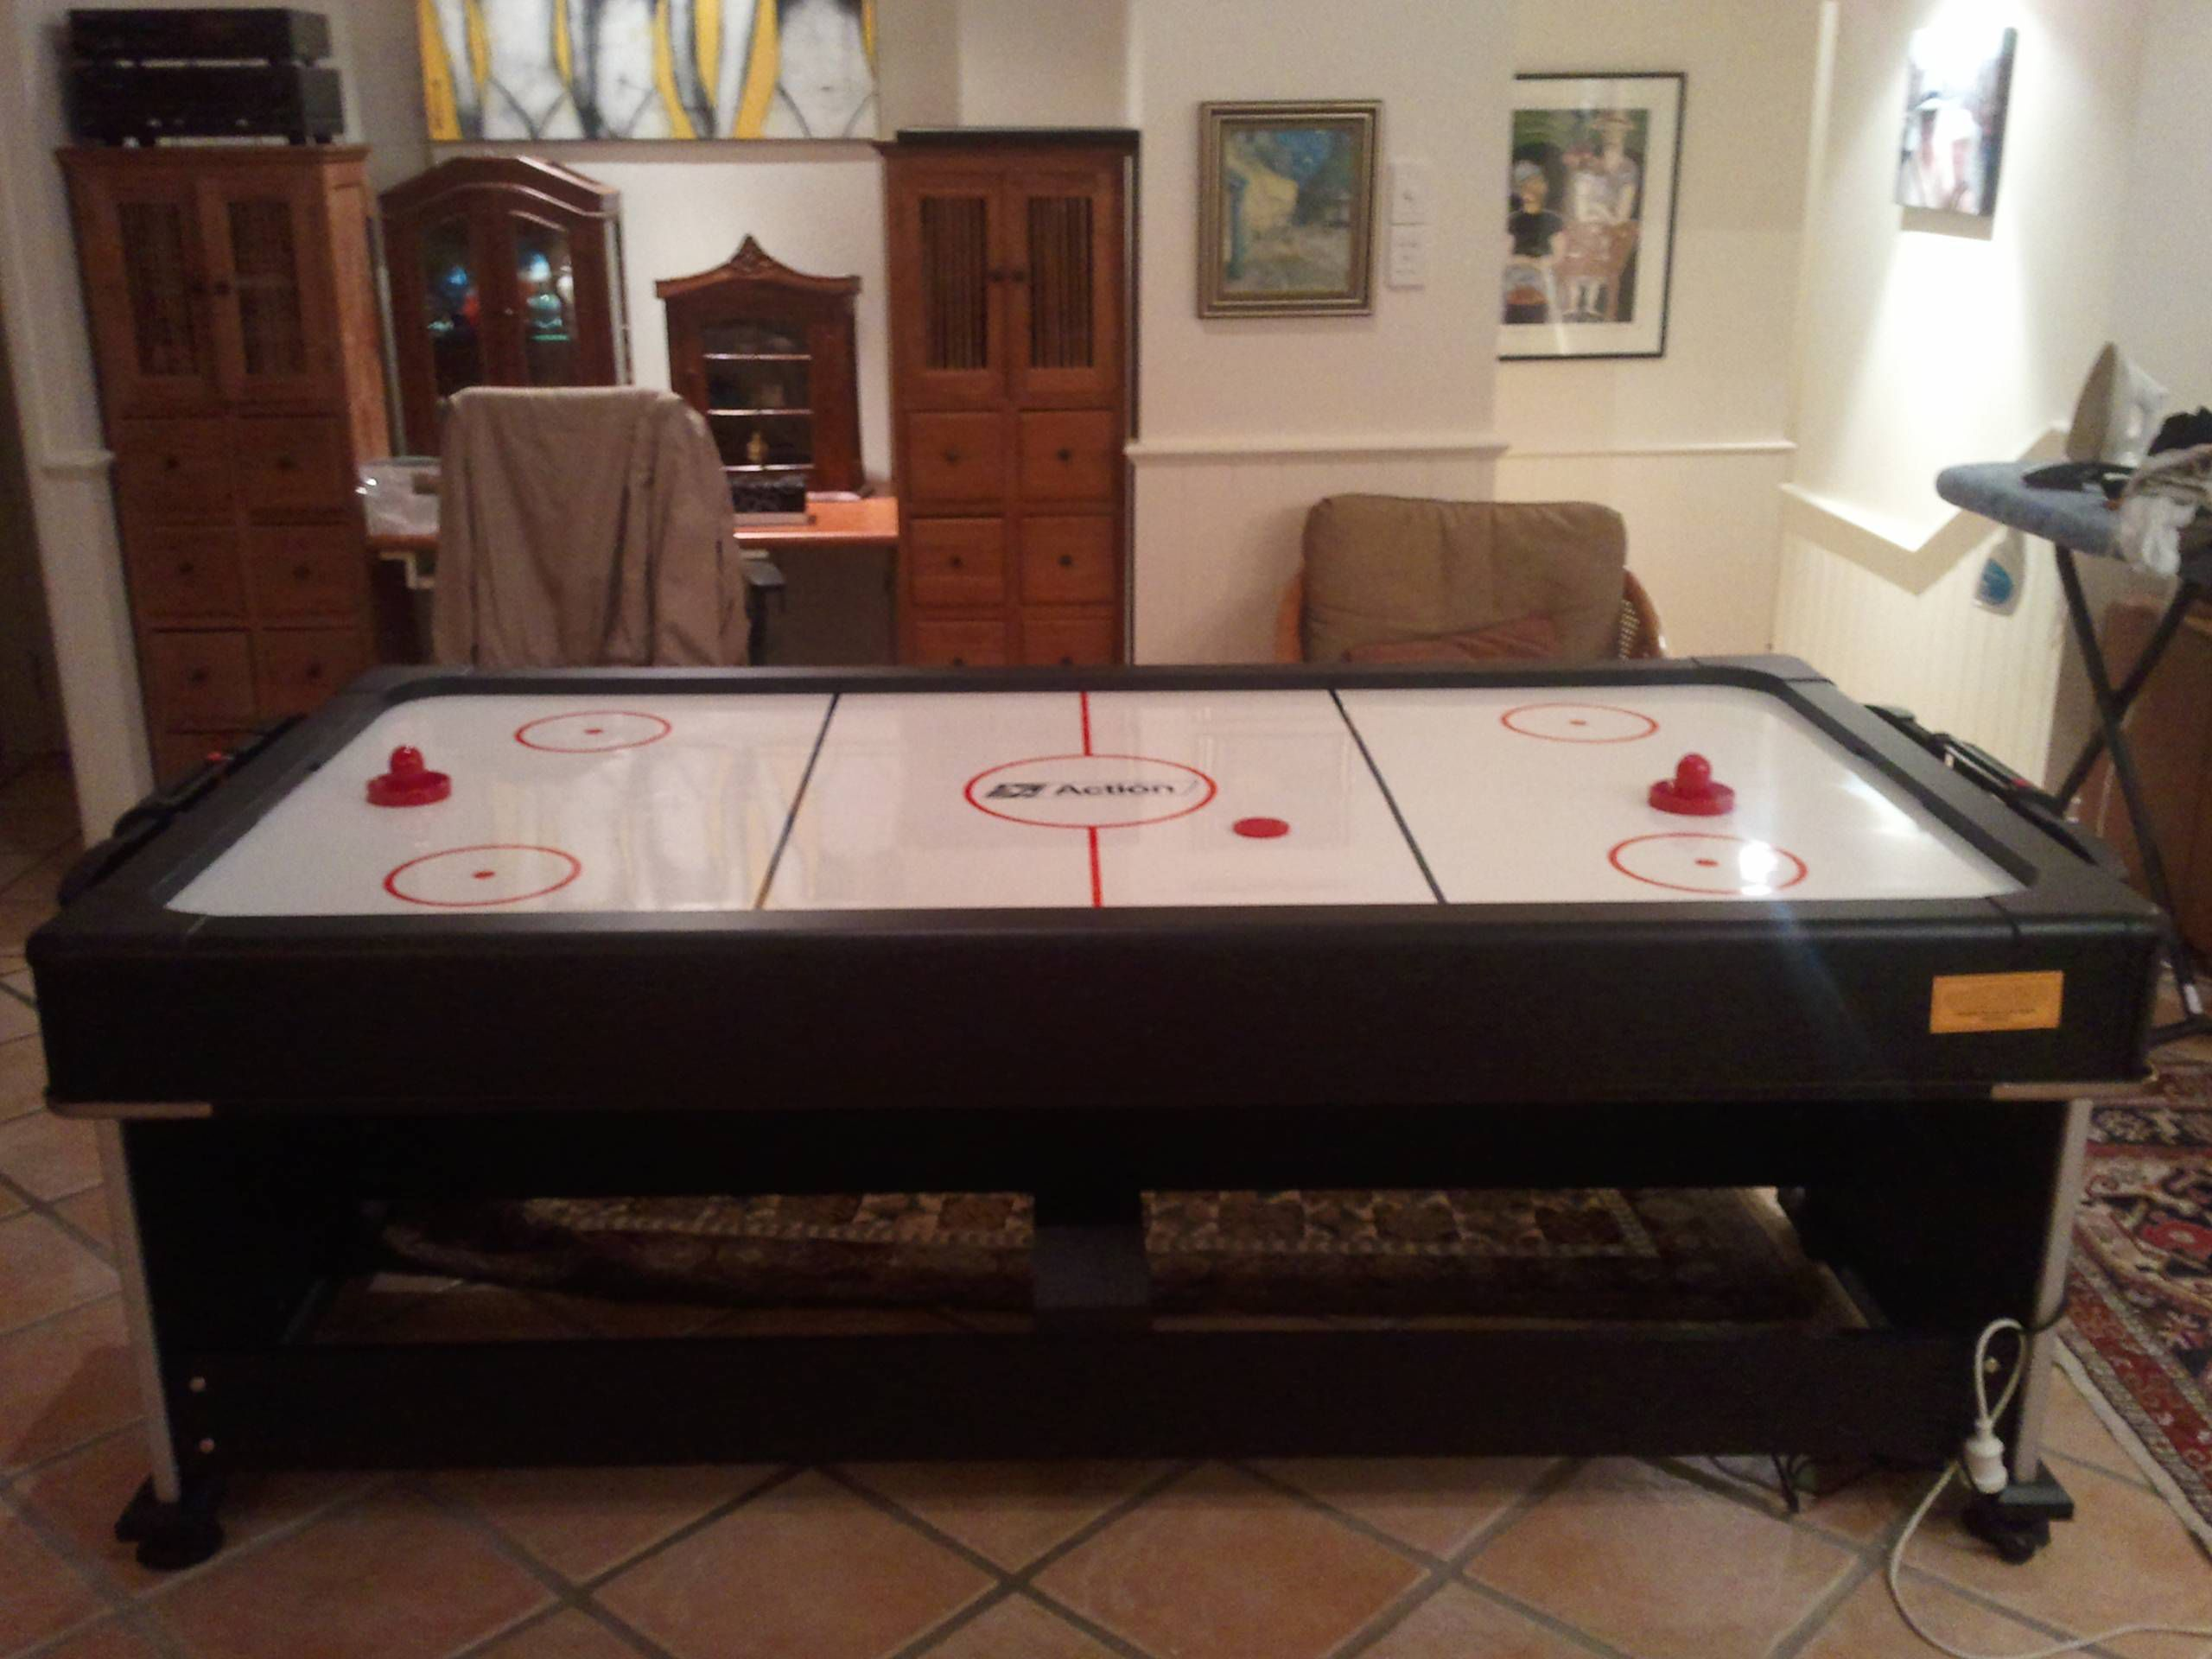 Pool Table with a Secret